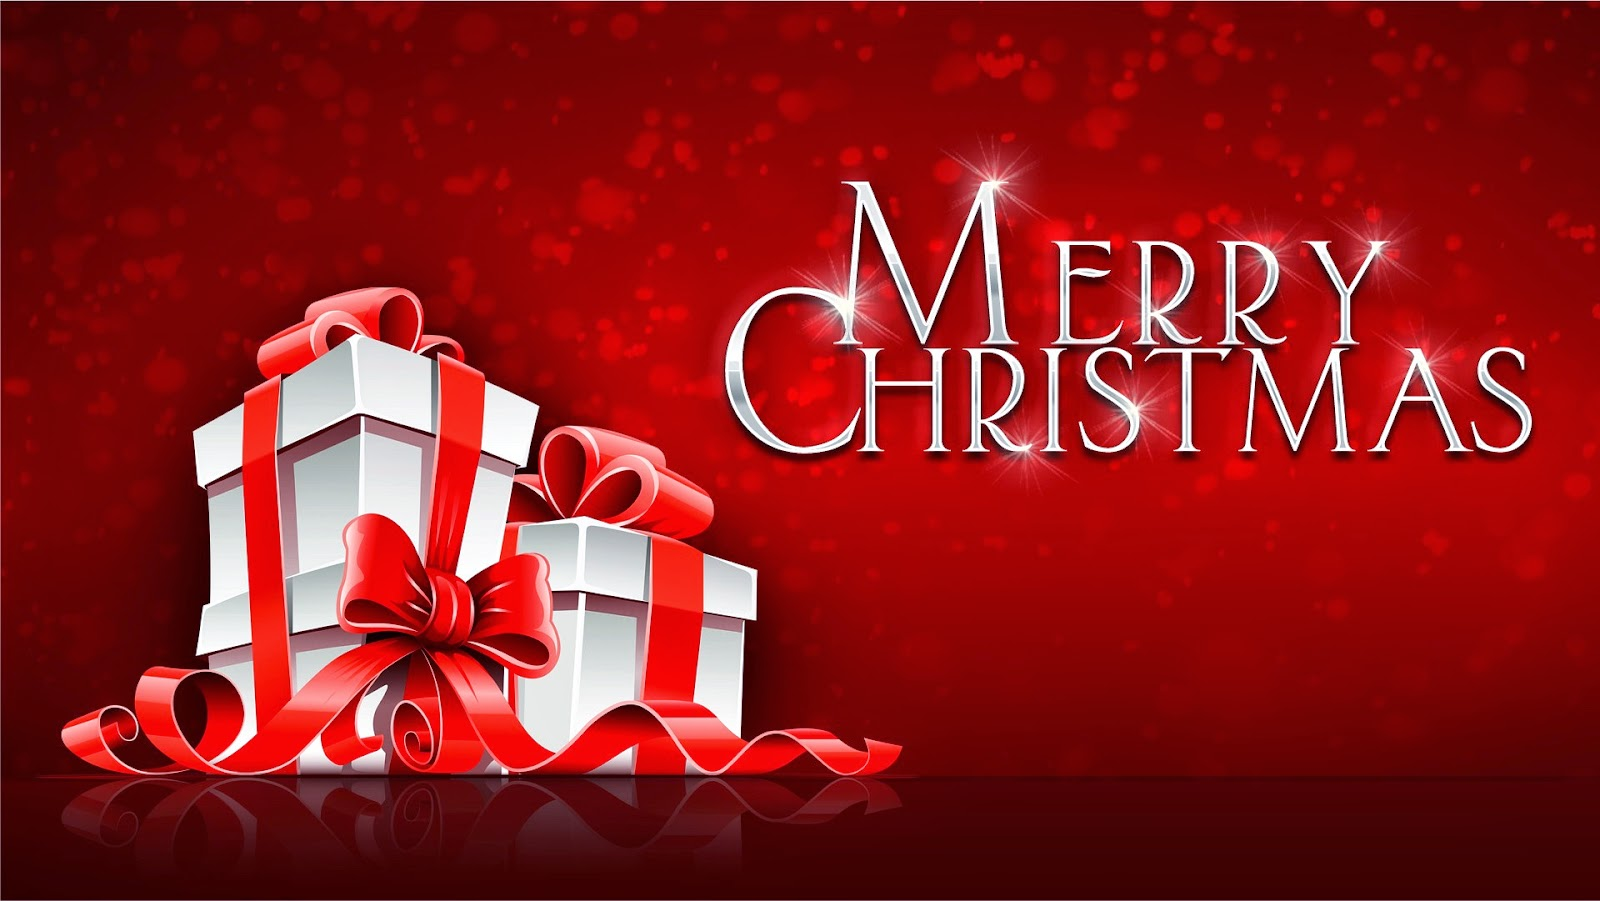 Merry Christmas Gift HD Wallpaper